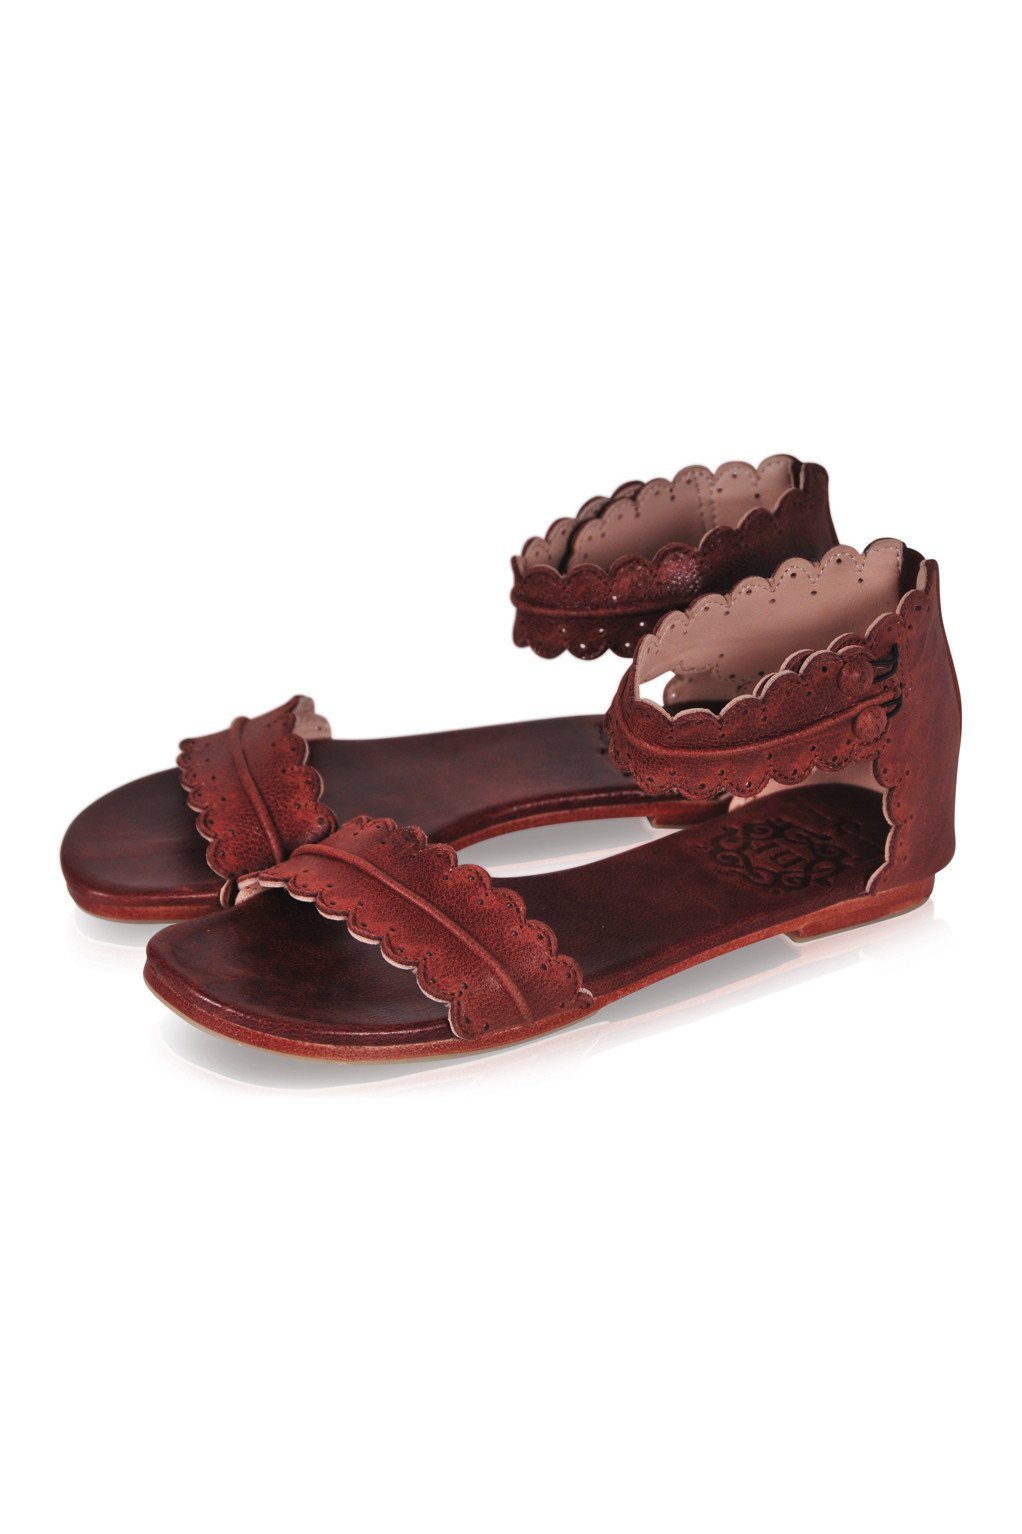 5466012ed6ed Home Leather Shoes Midsummer. Handmade beautiful leather sandals.